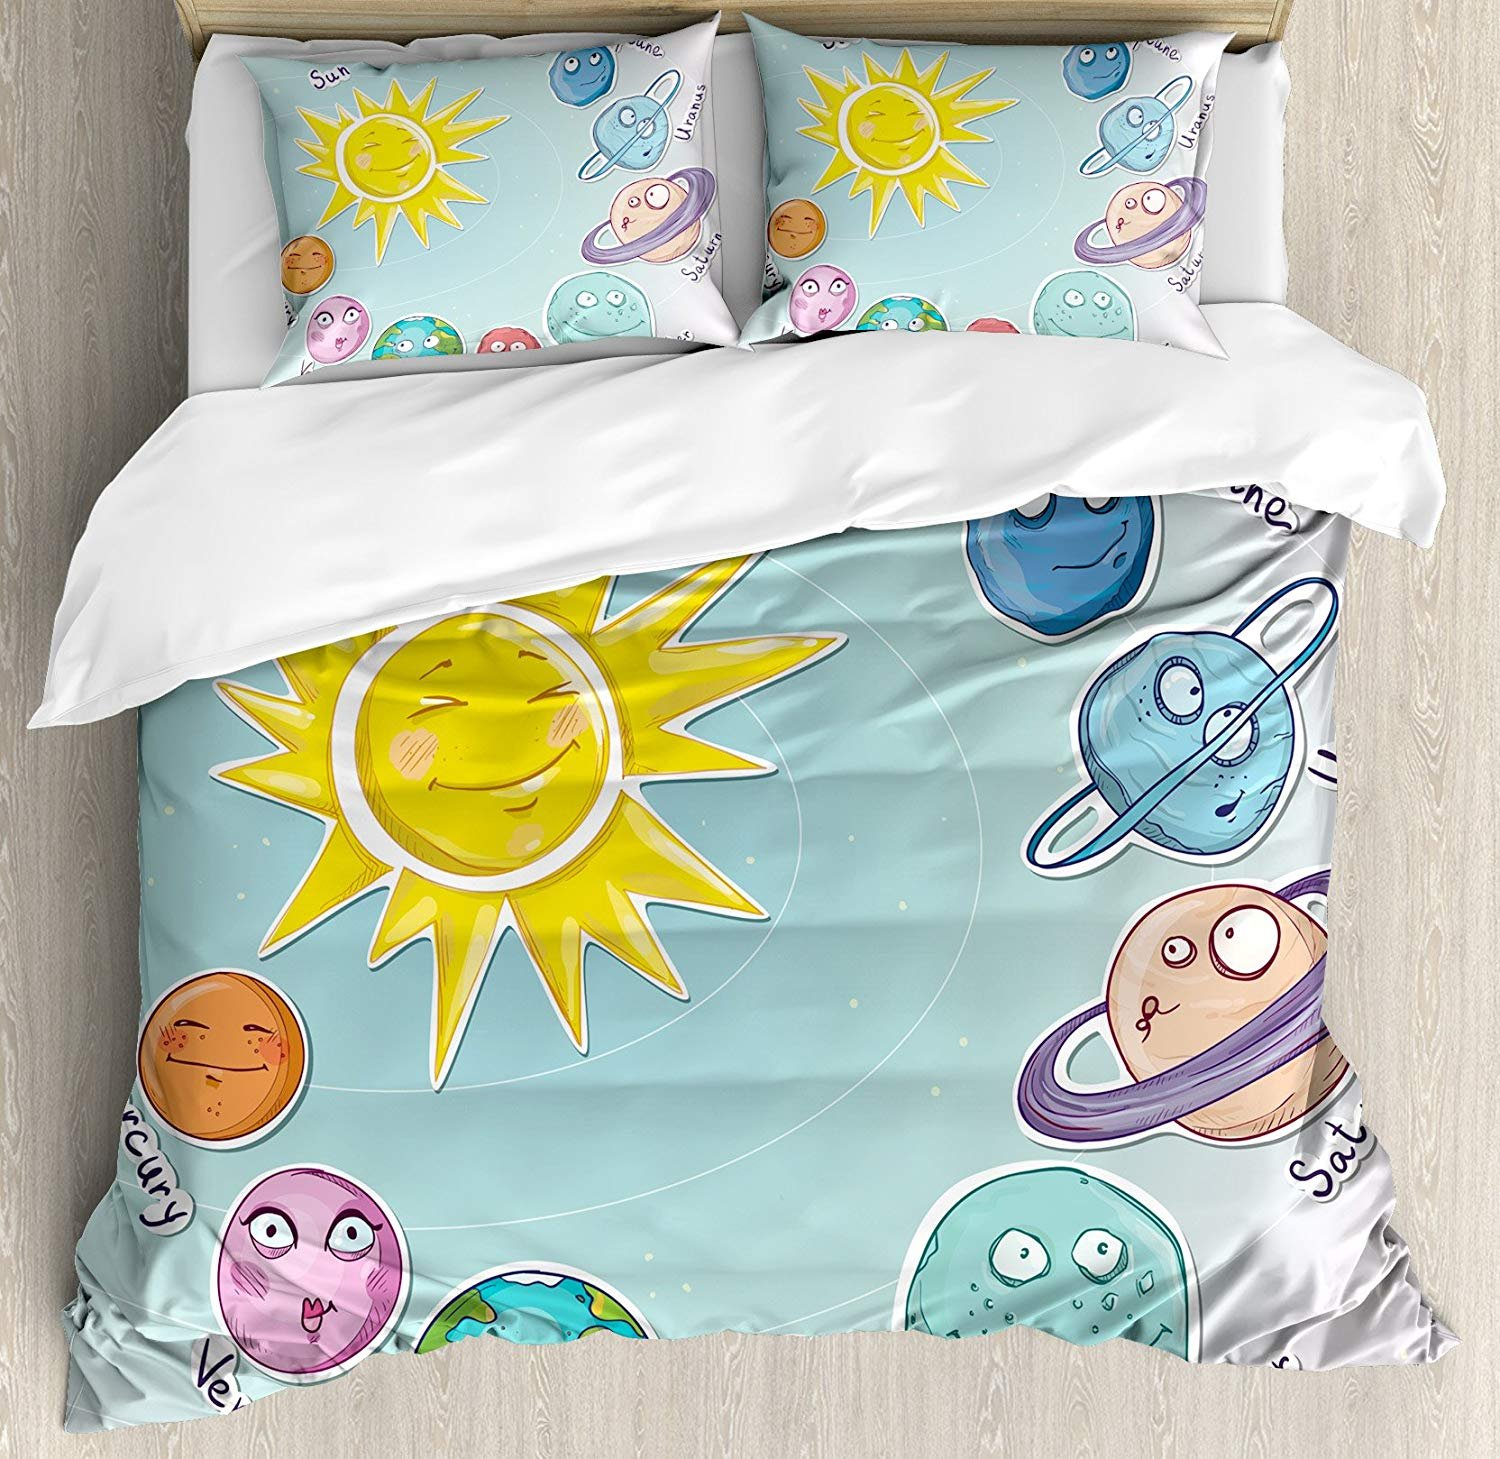 Space Twin Duvet Cover Sets 4 Piece Bedding Set Bedspread with 2 Pillow Sham, Flat Sheet for Adult/Kids/Teens, Cute Cartoon Sun and Planets of Solar System Fun Celestial Chart Baby Kids Nursery Theme